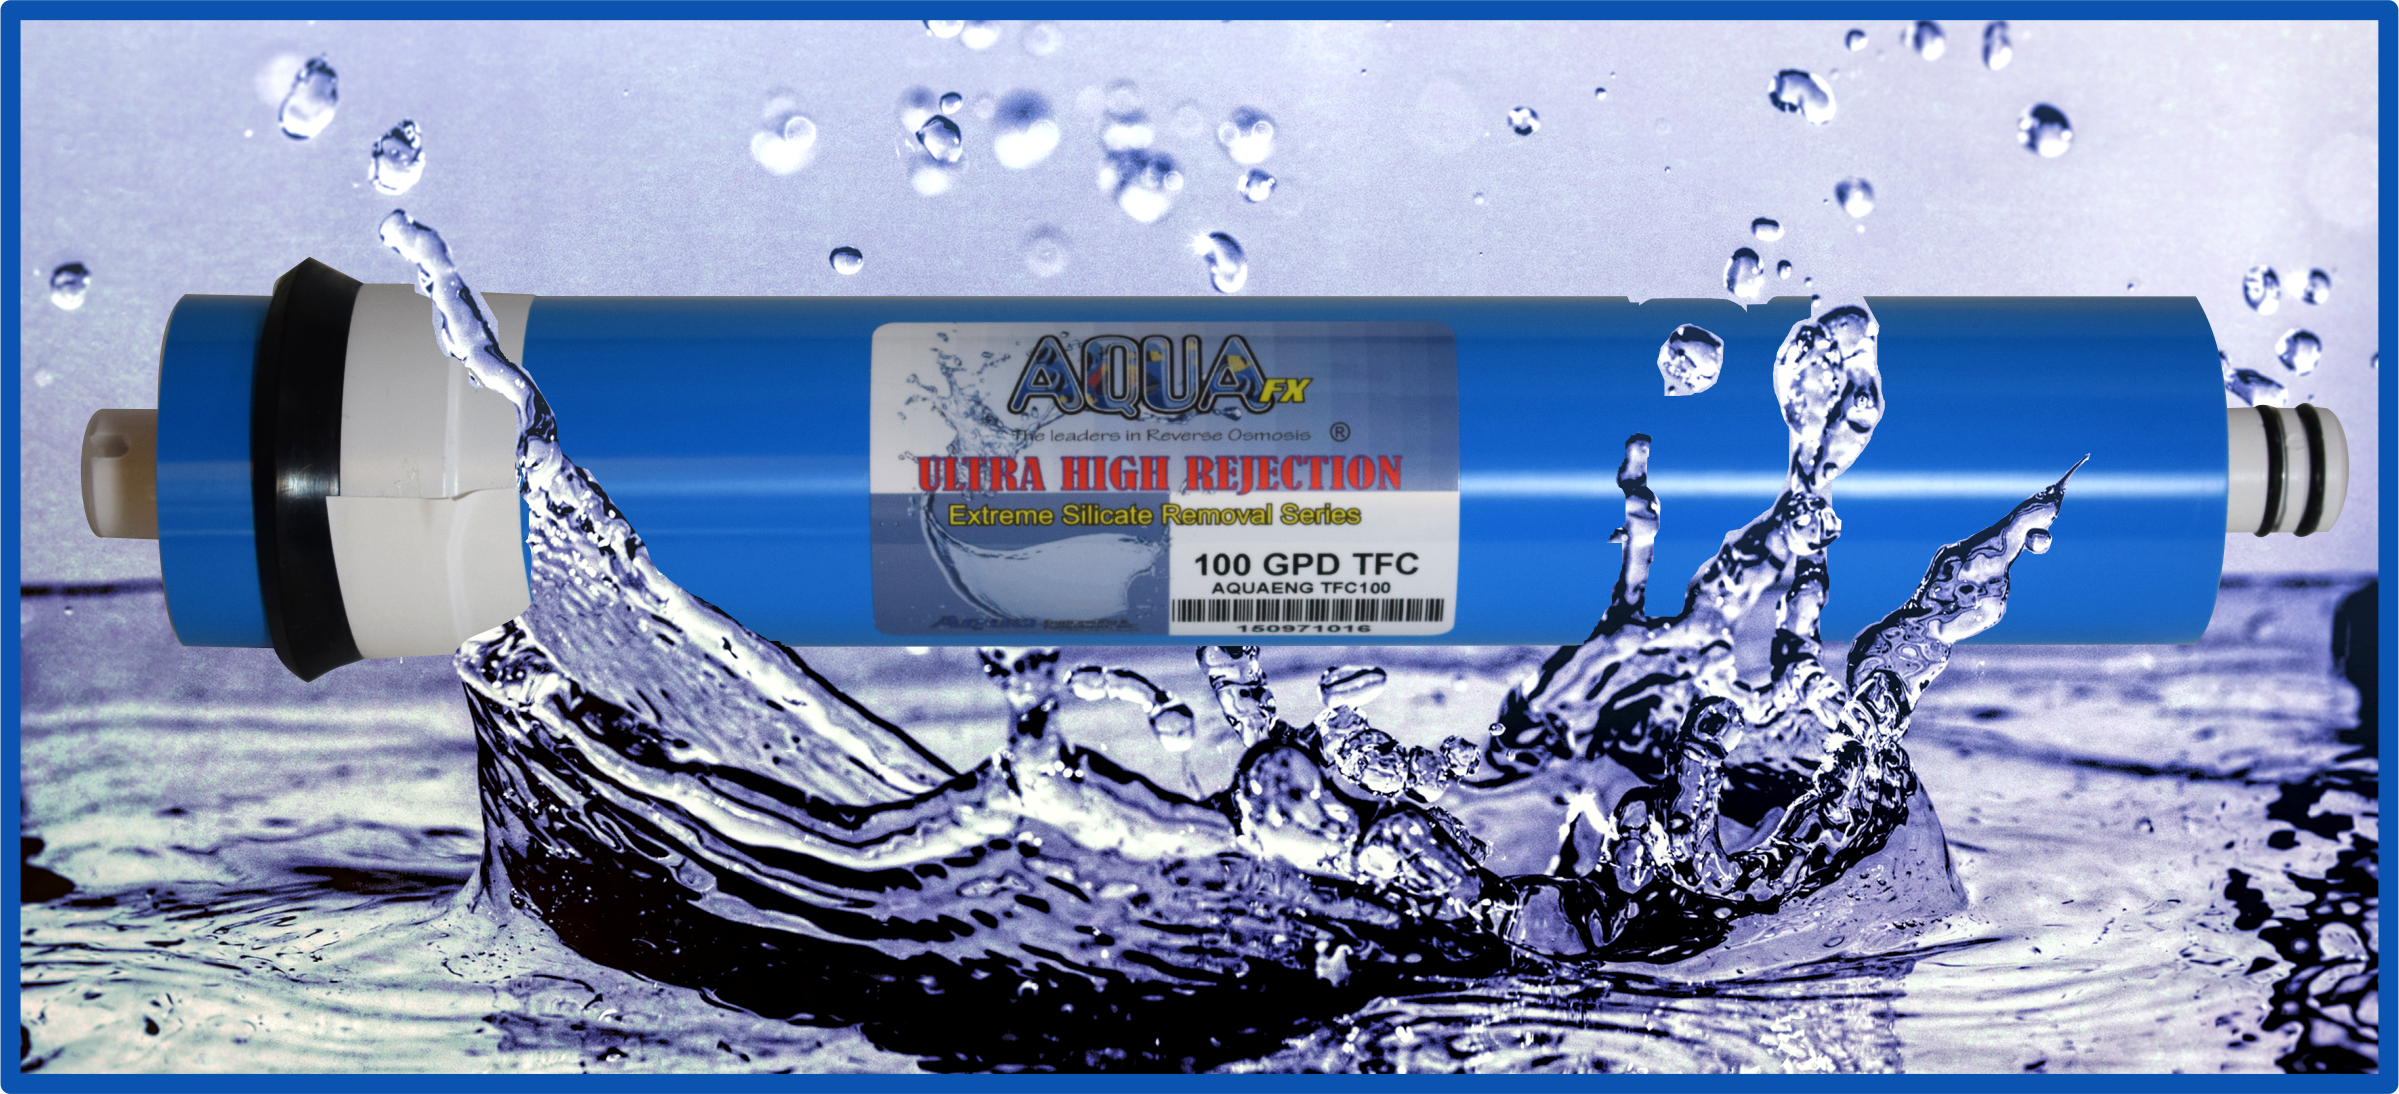 Welcome To Aquafx The Leaders In Reverse Osmosis